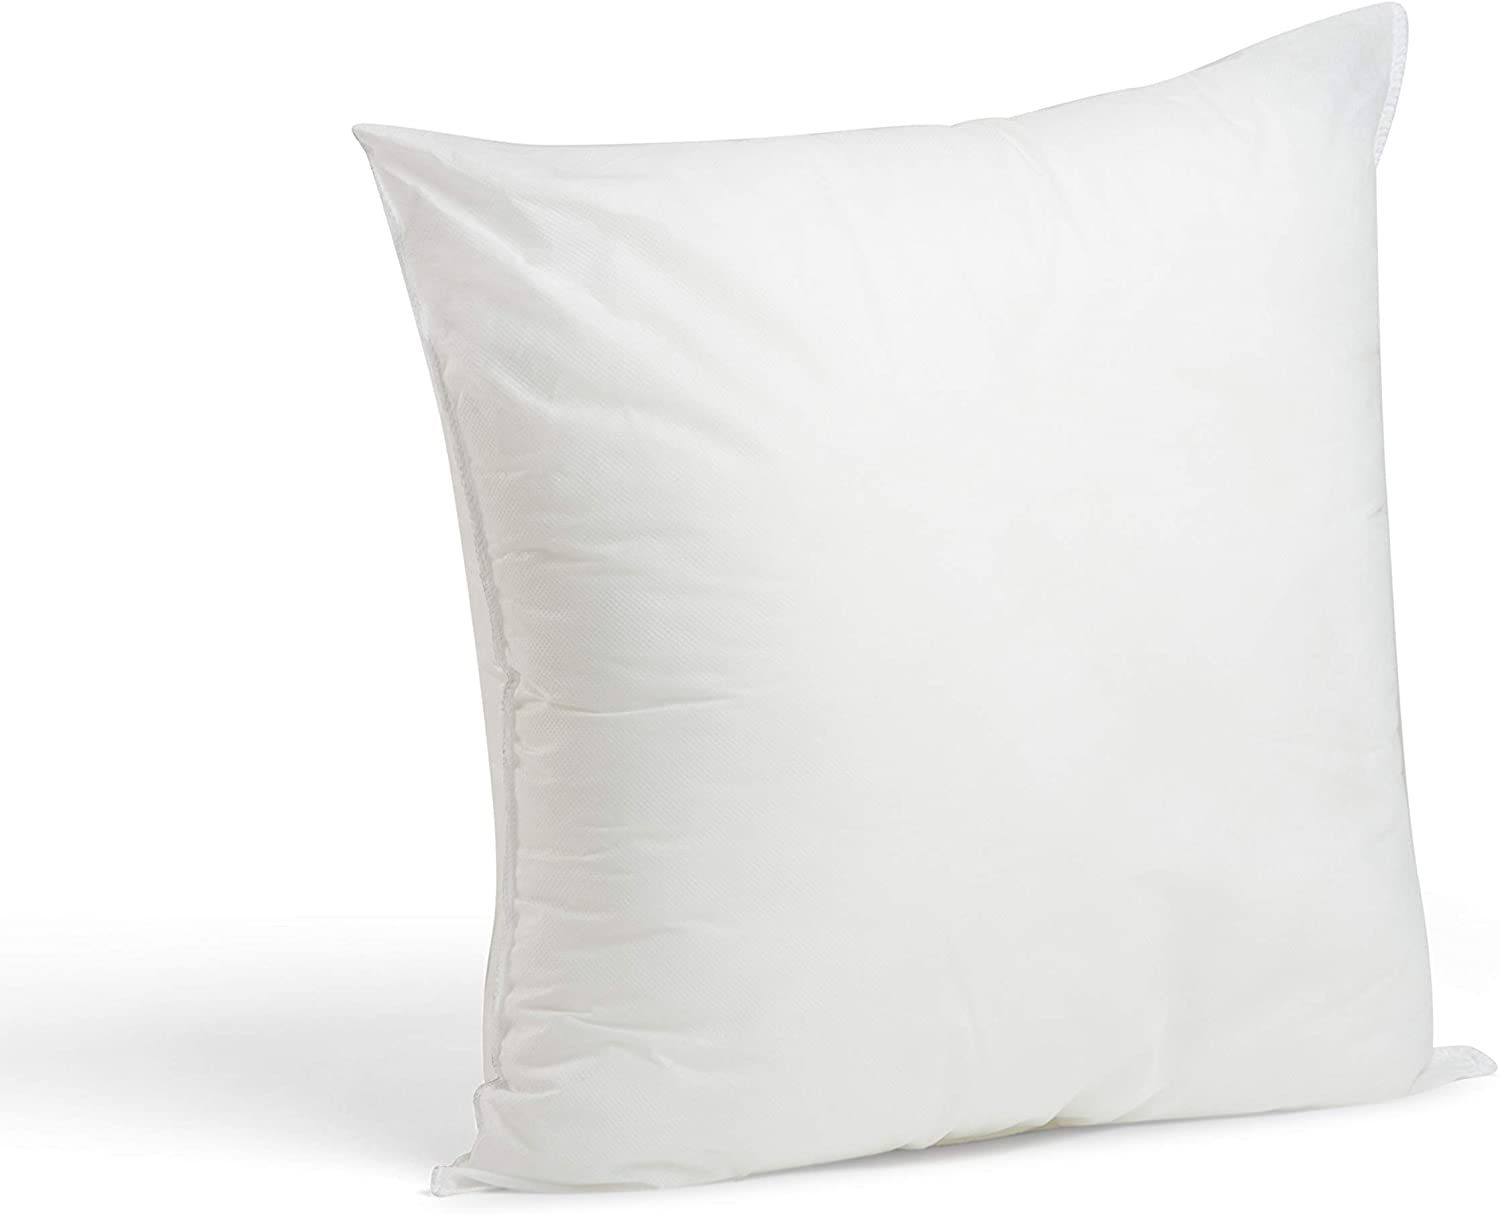 "Foamily Premium Hypoallergenic Stuffer Pillow Insert Sham Square Form Polyester, 18"" x 18"", White: Home & Kitchen"